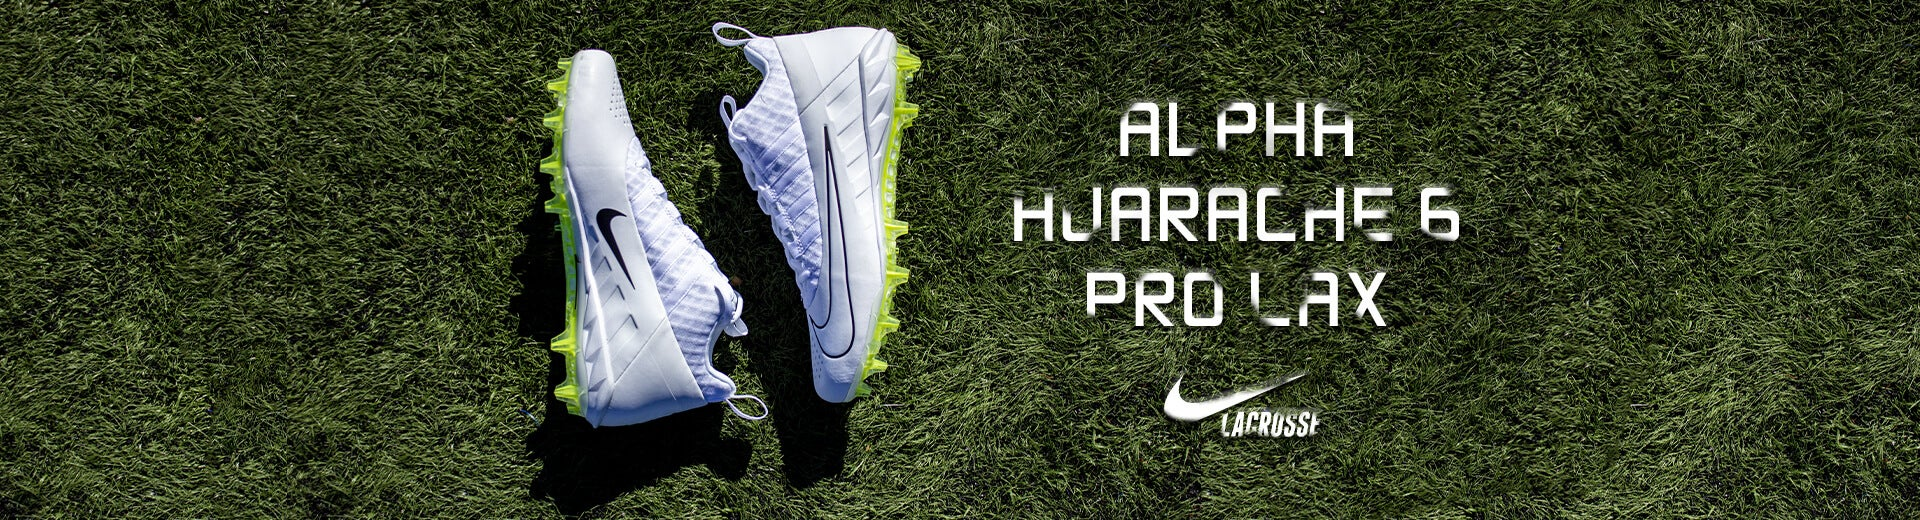 Nike Alpha Huarache 6 Cleats - DESKTOP